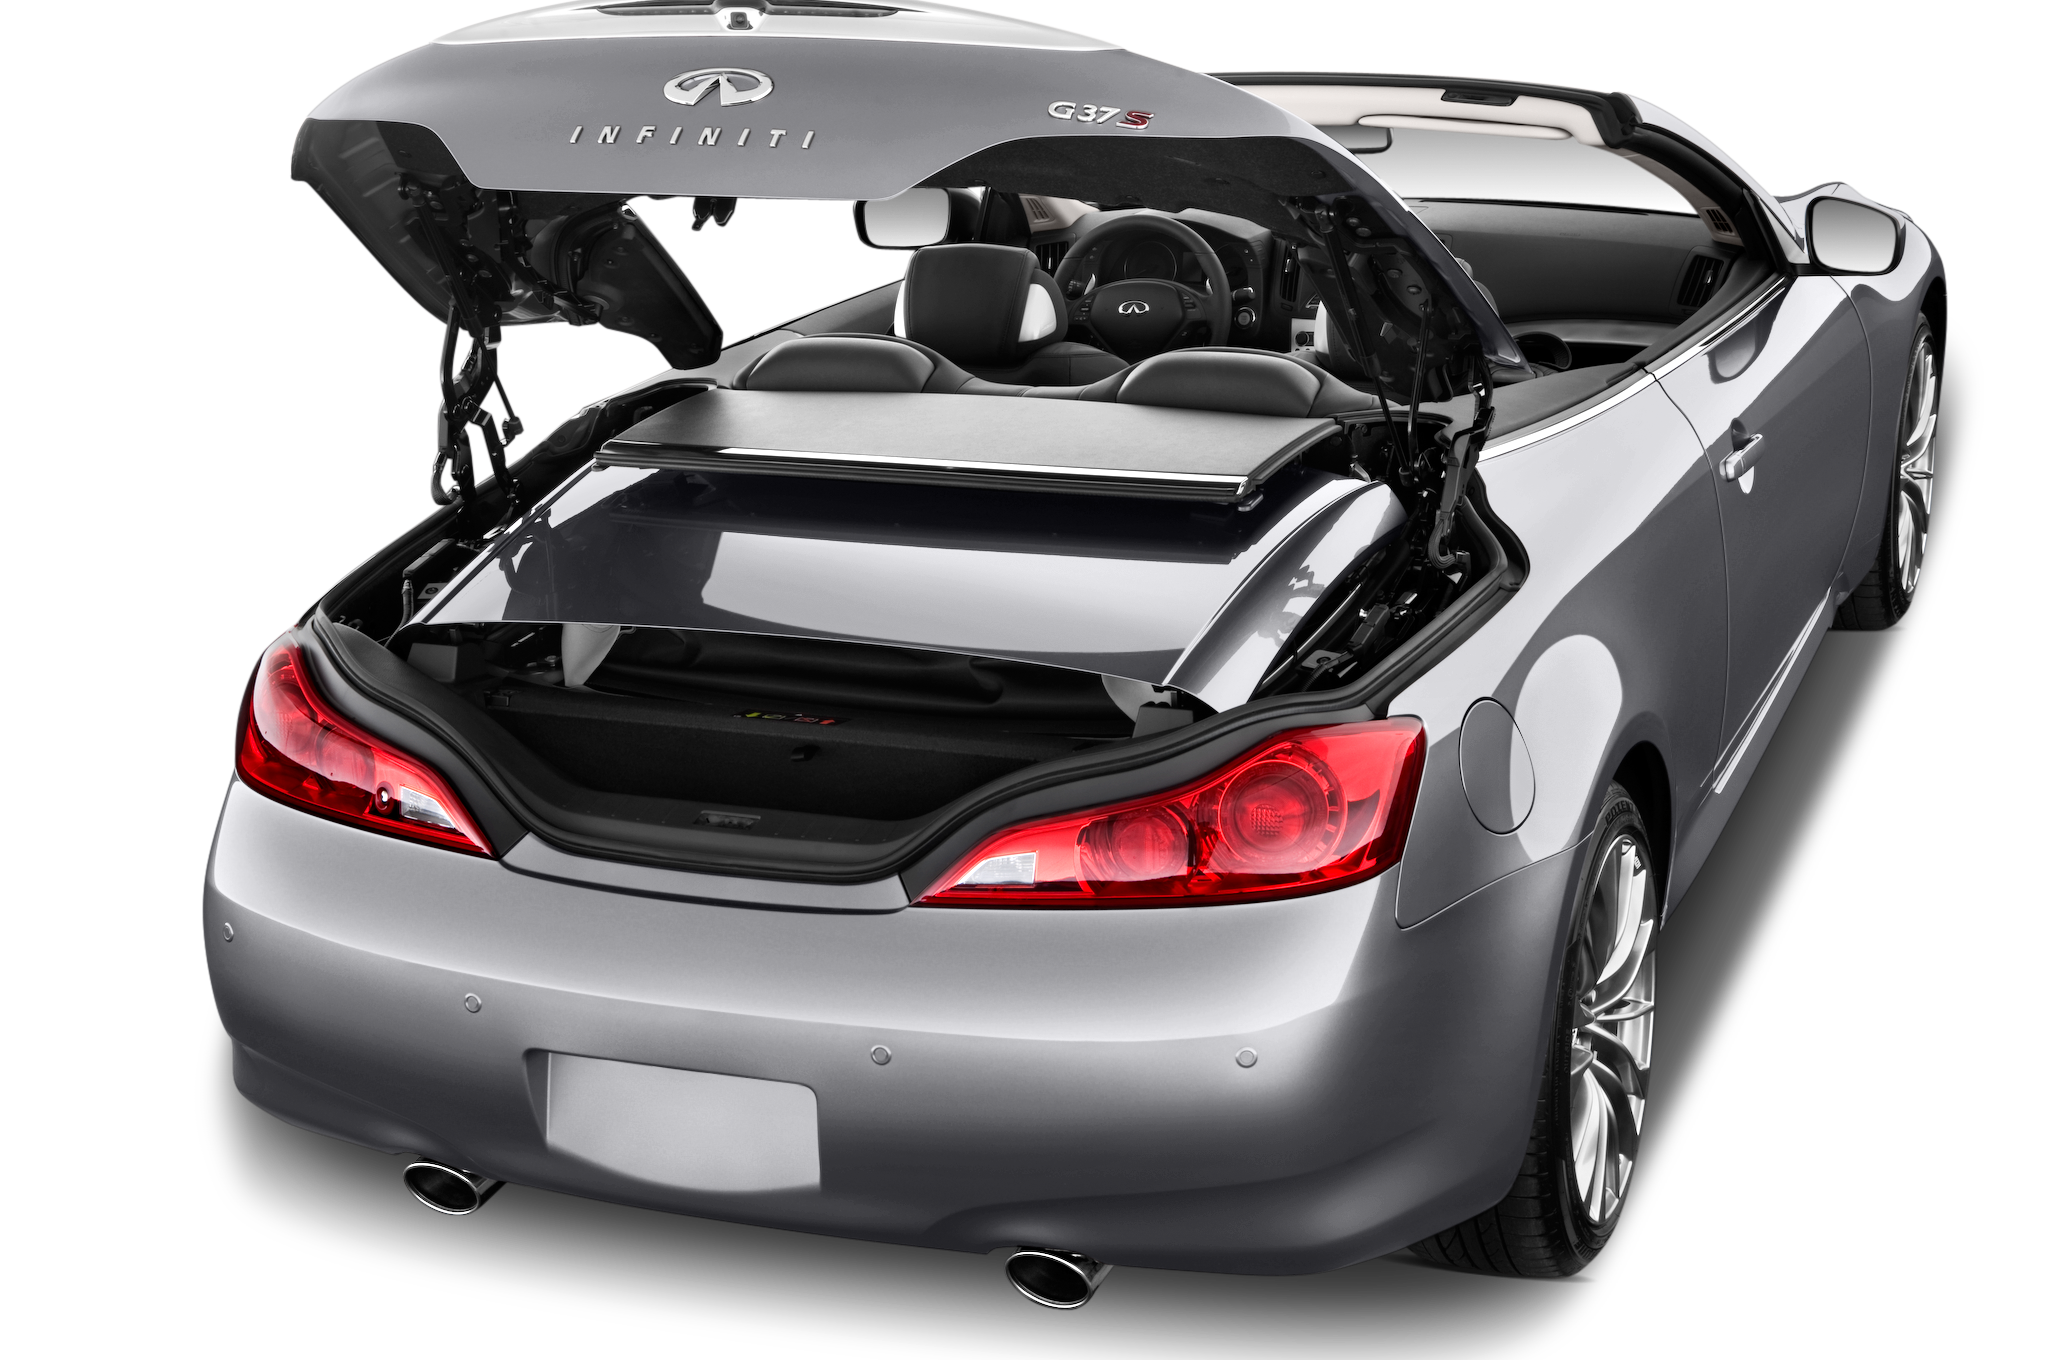 news ipl automobile infinity right infiniti notebook view side generally convertible editors rear